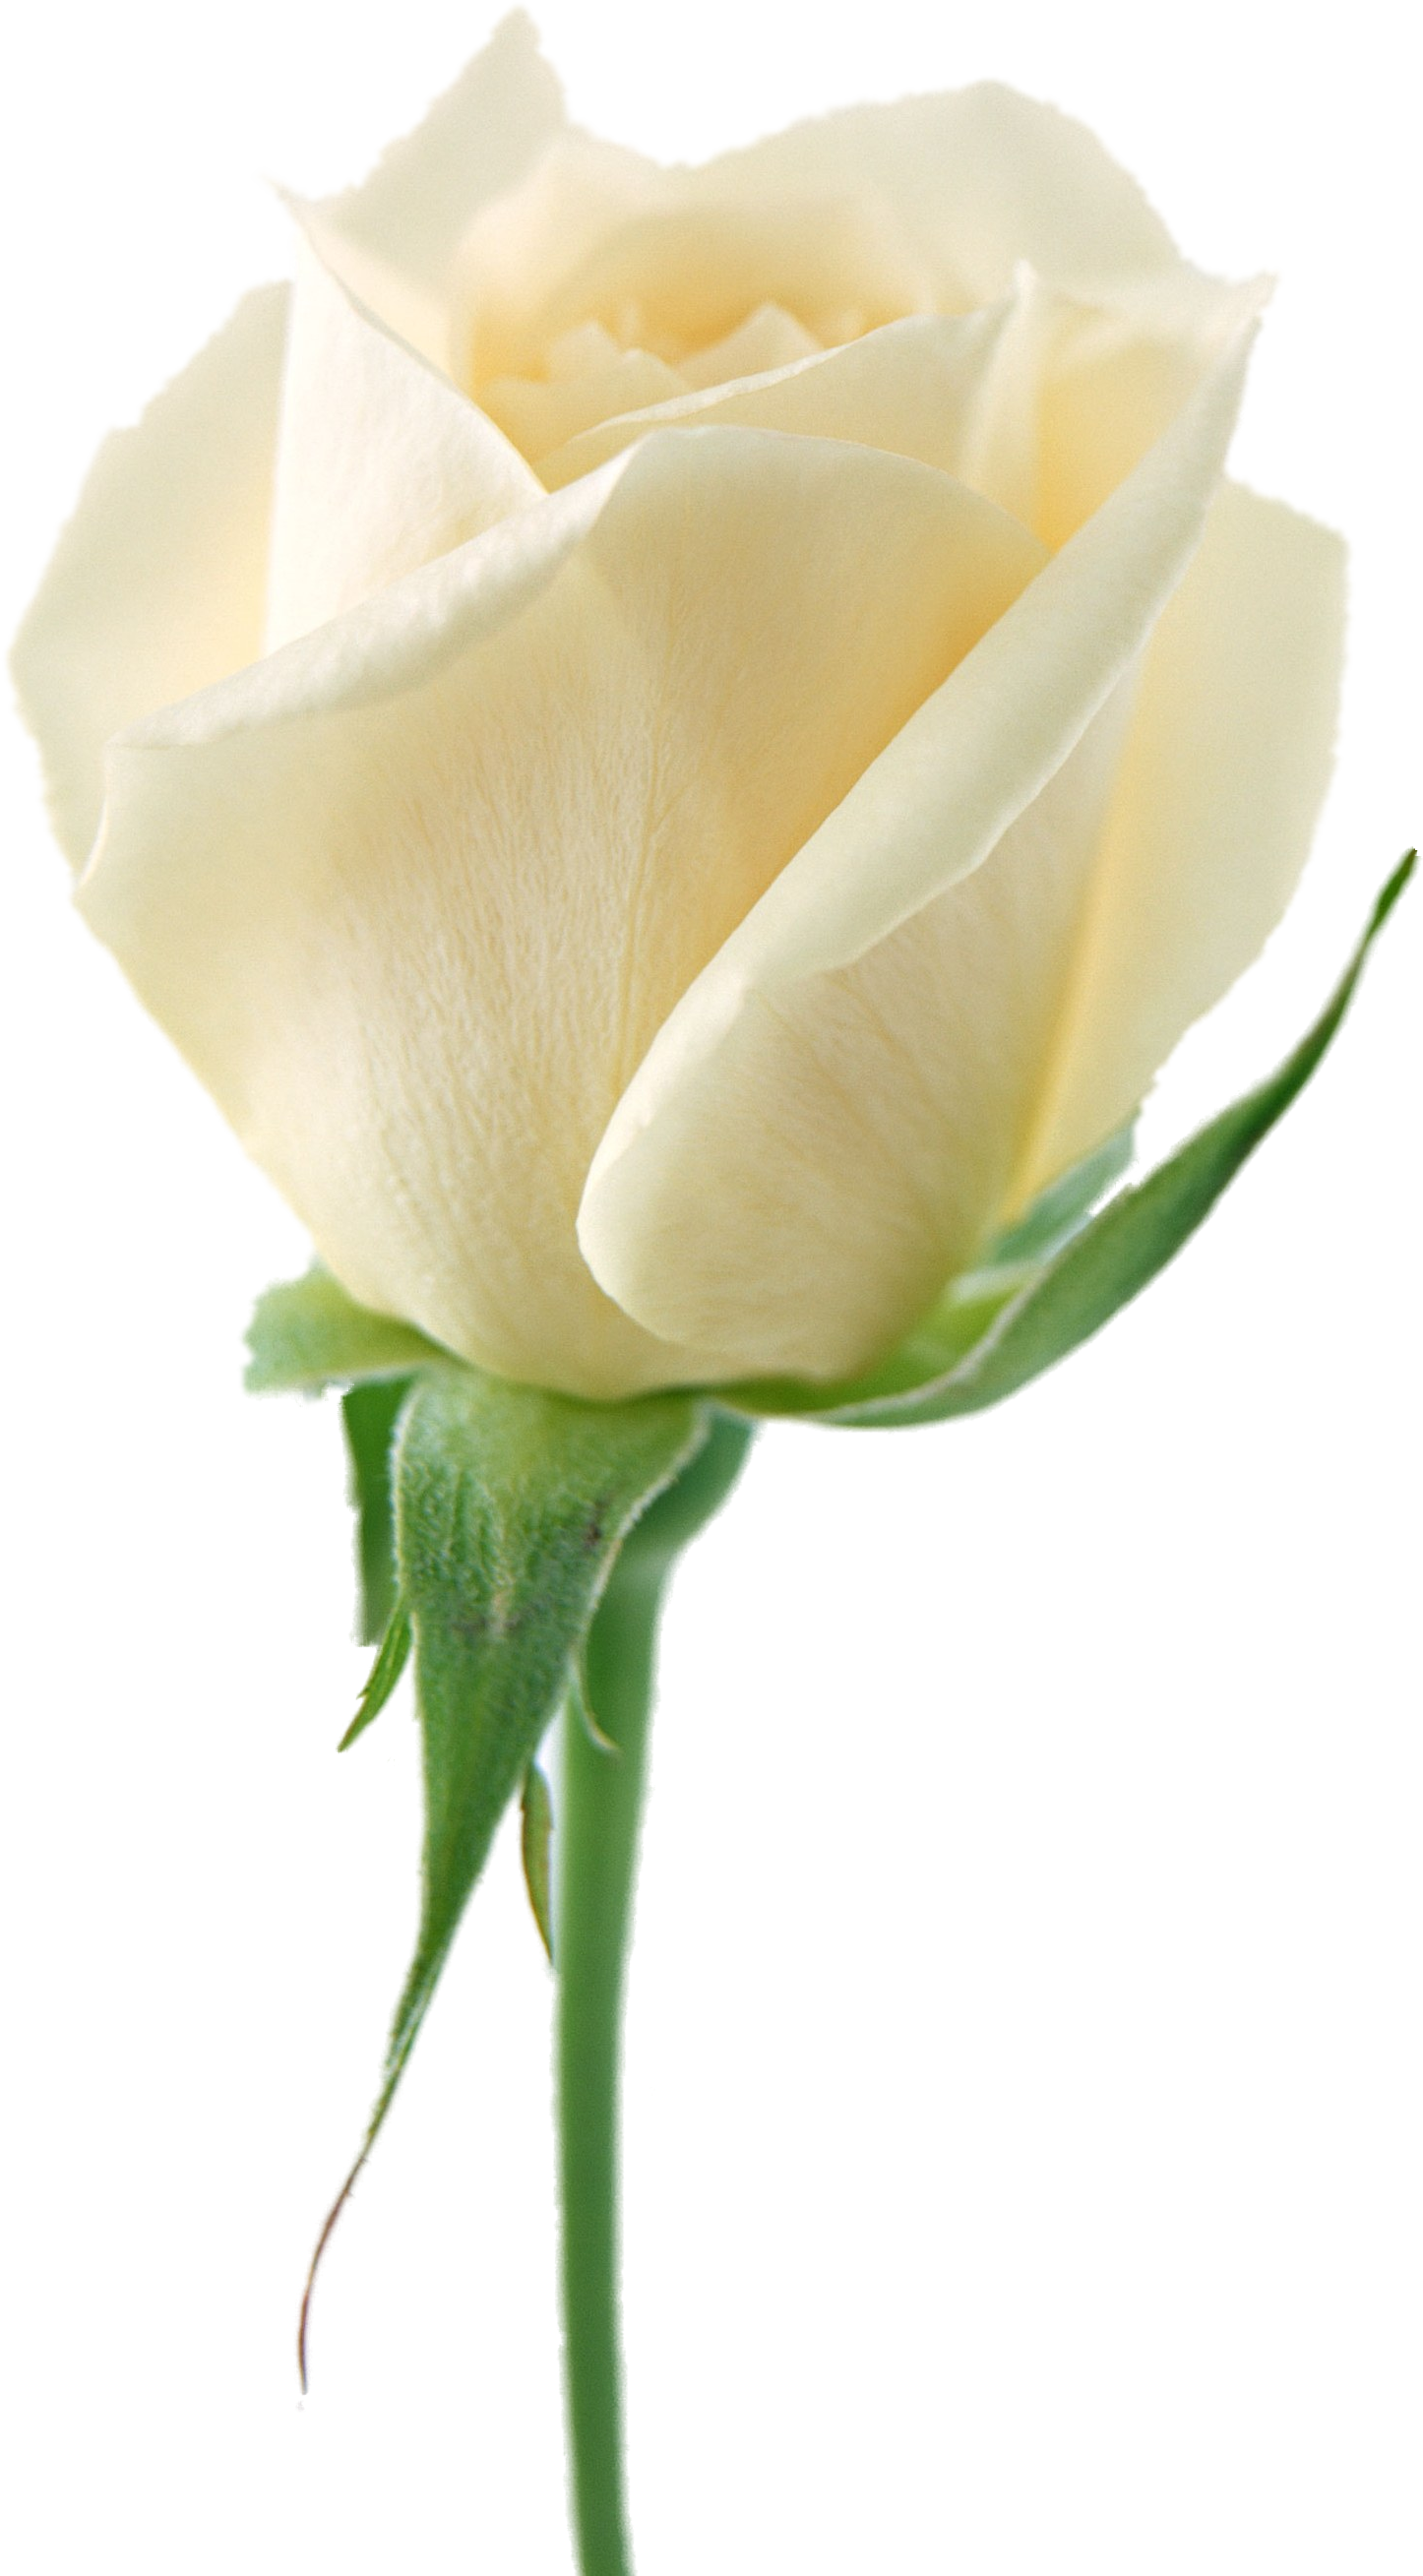 White rose png. Image flower picture